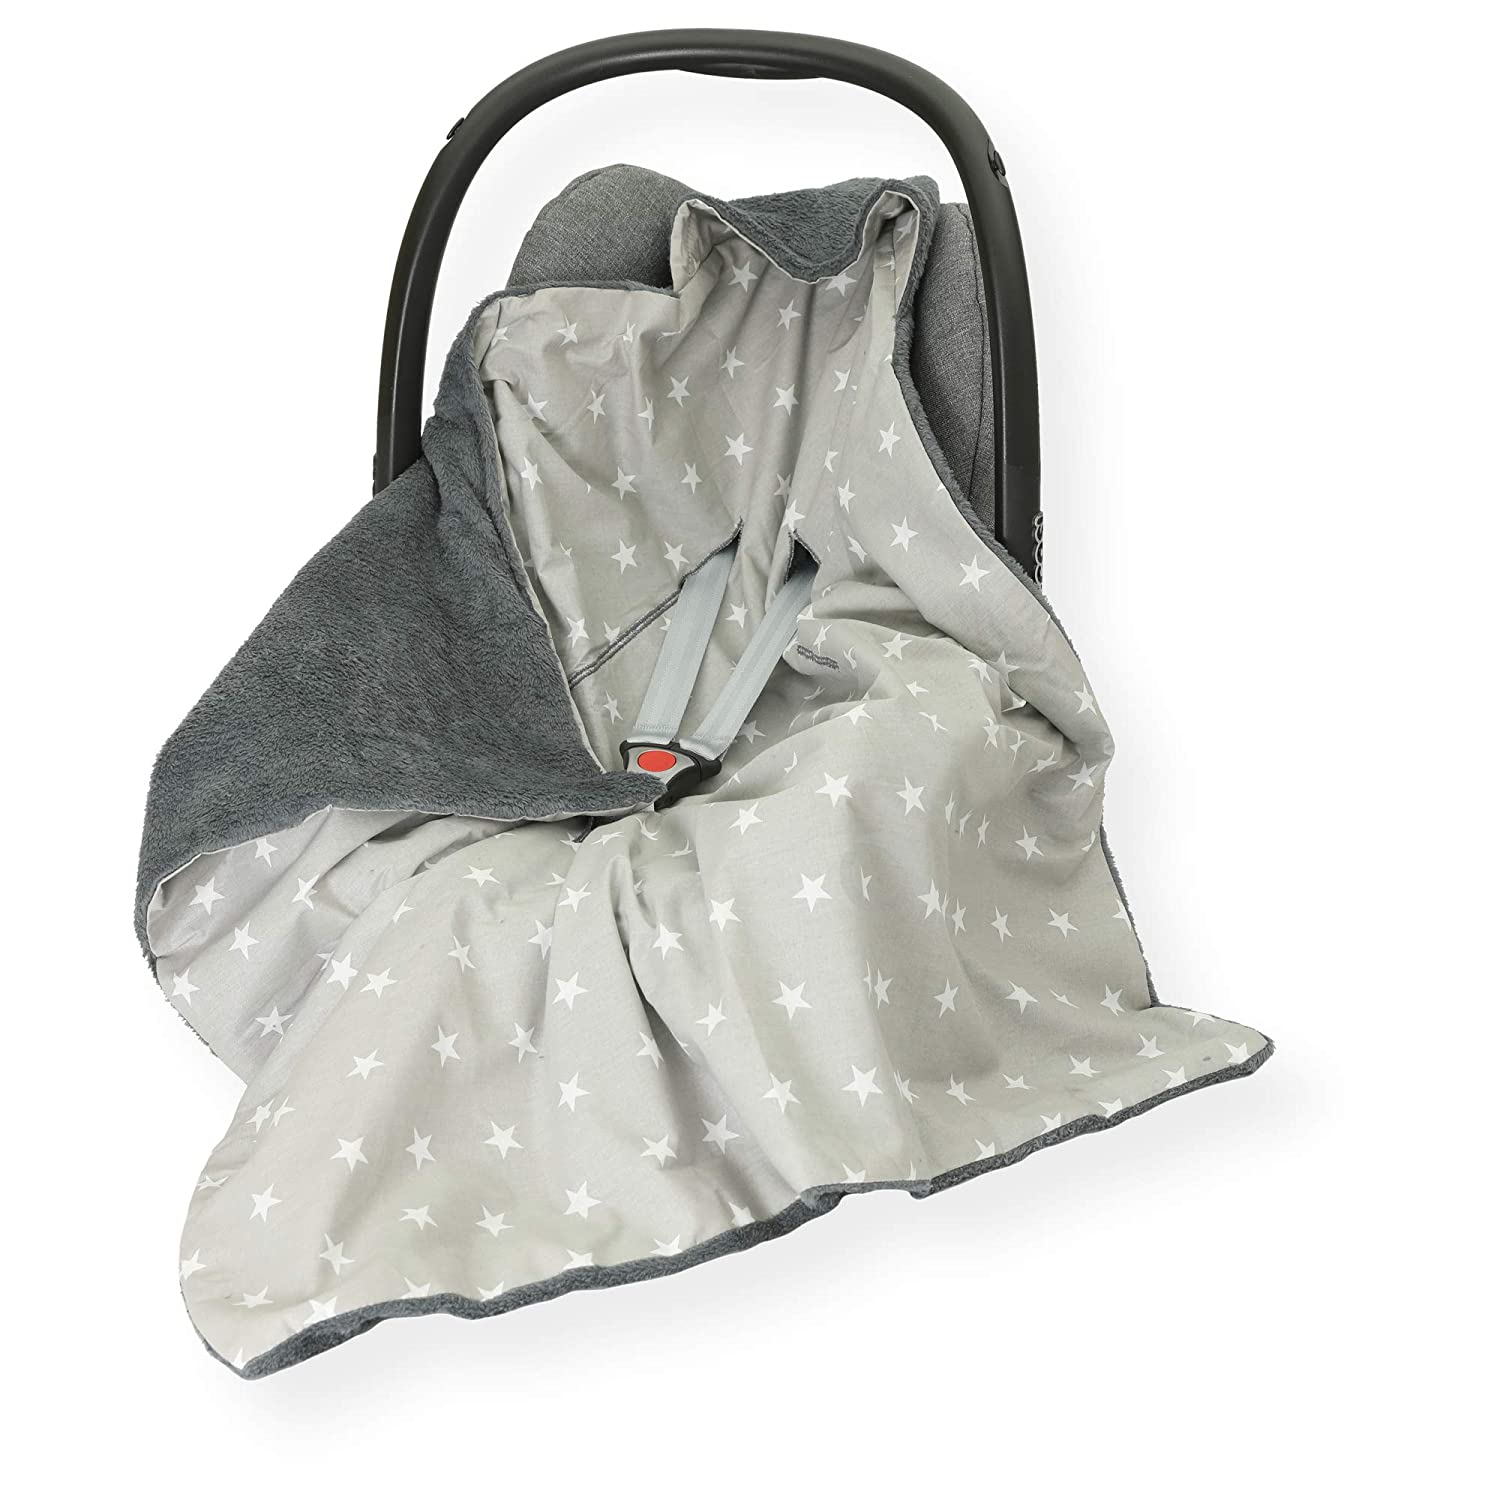 LG Star - Grey//Grey Sided 100 x 100cm Hooded Blanket with SEAT Belt Holes CAR SEAT Blanket//Cover//COSYTOES FOOTMUFF Double